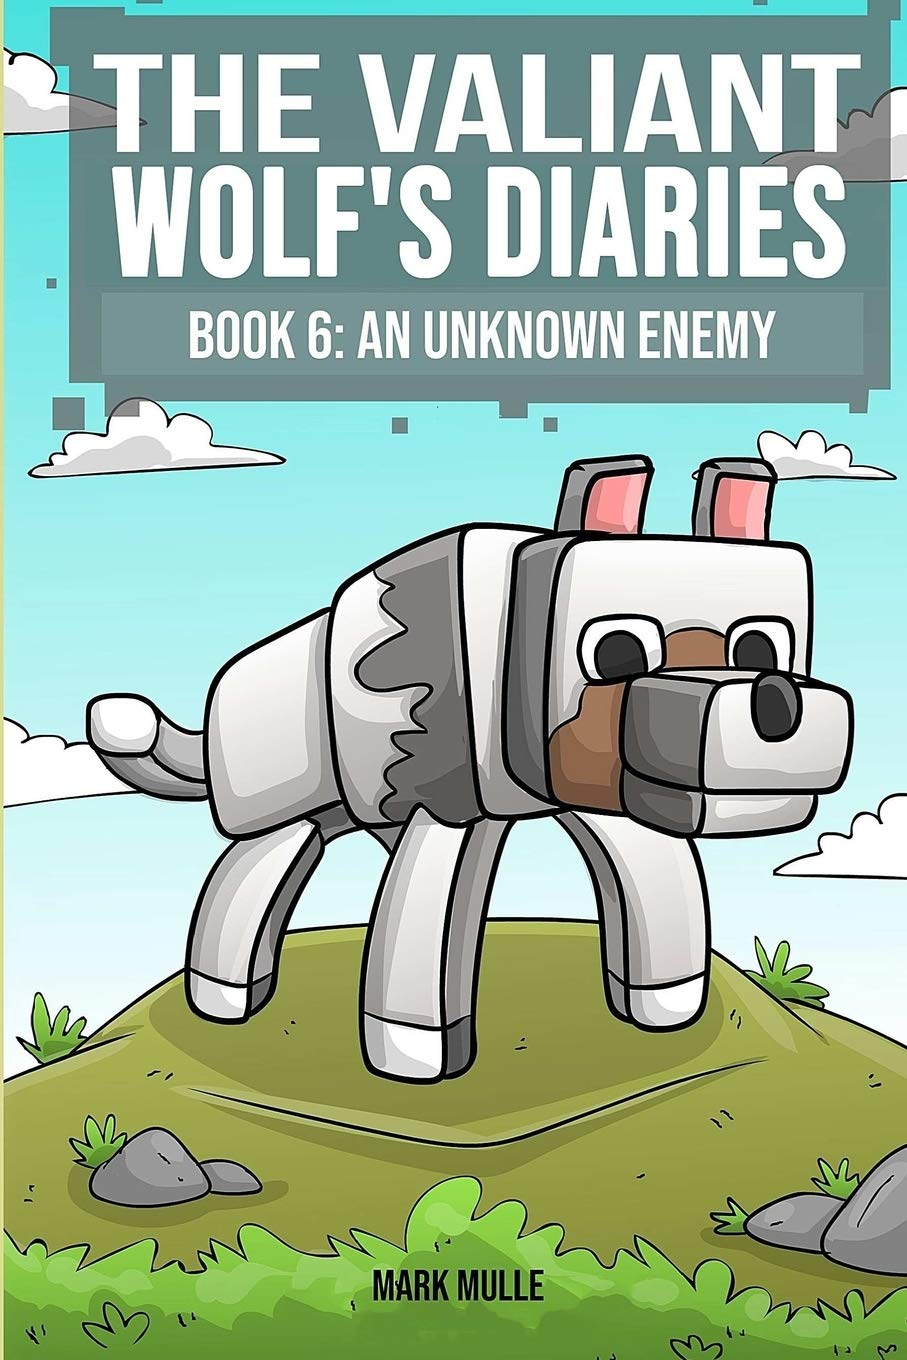 The Valiant Wolfs Diaries Book 6 : An Unknown Enemy An Unofficial Minecraft Book for Kids Ages 9 - 12 Preteen ...